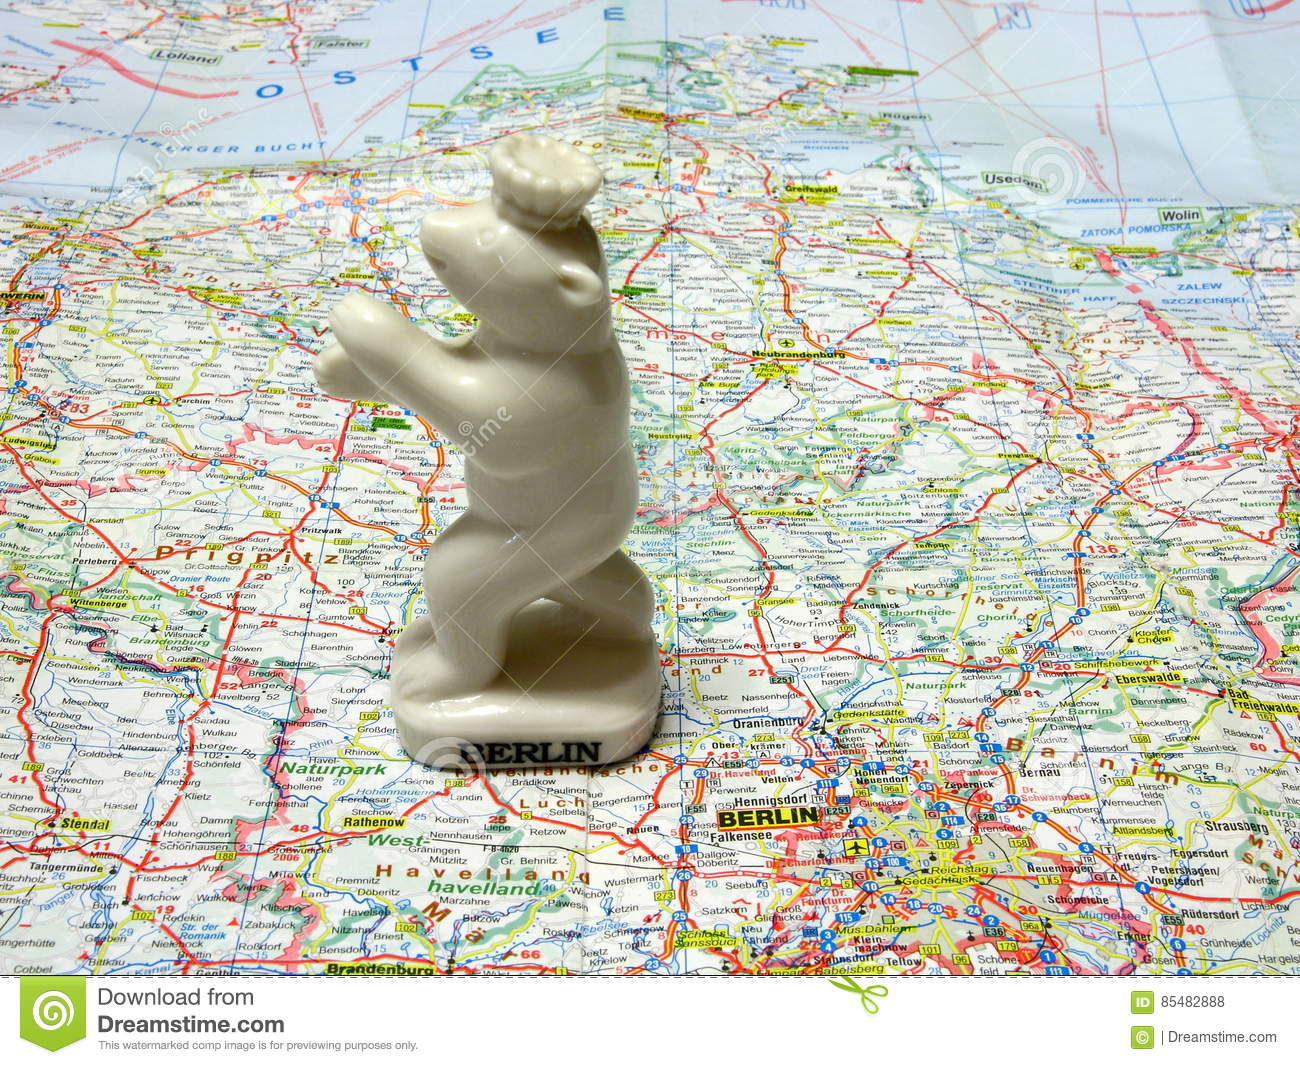 Map Of Germany Souvenir Of Berlin. Stock Photo - Image of region ...